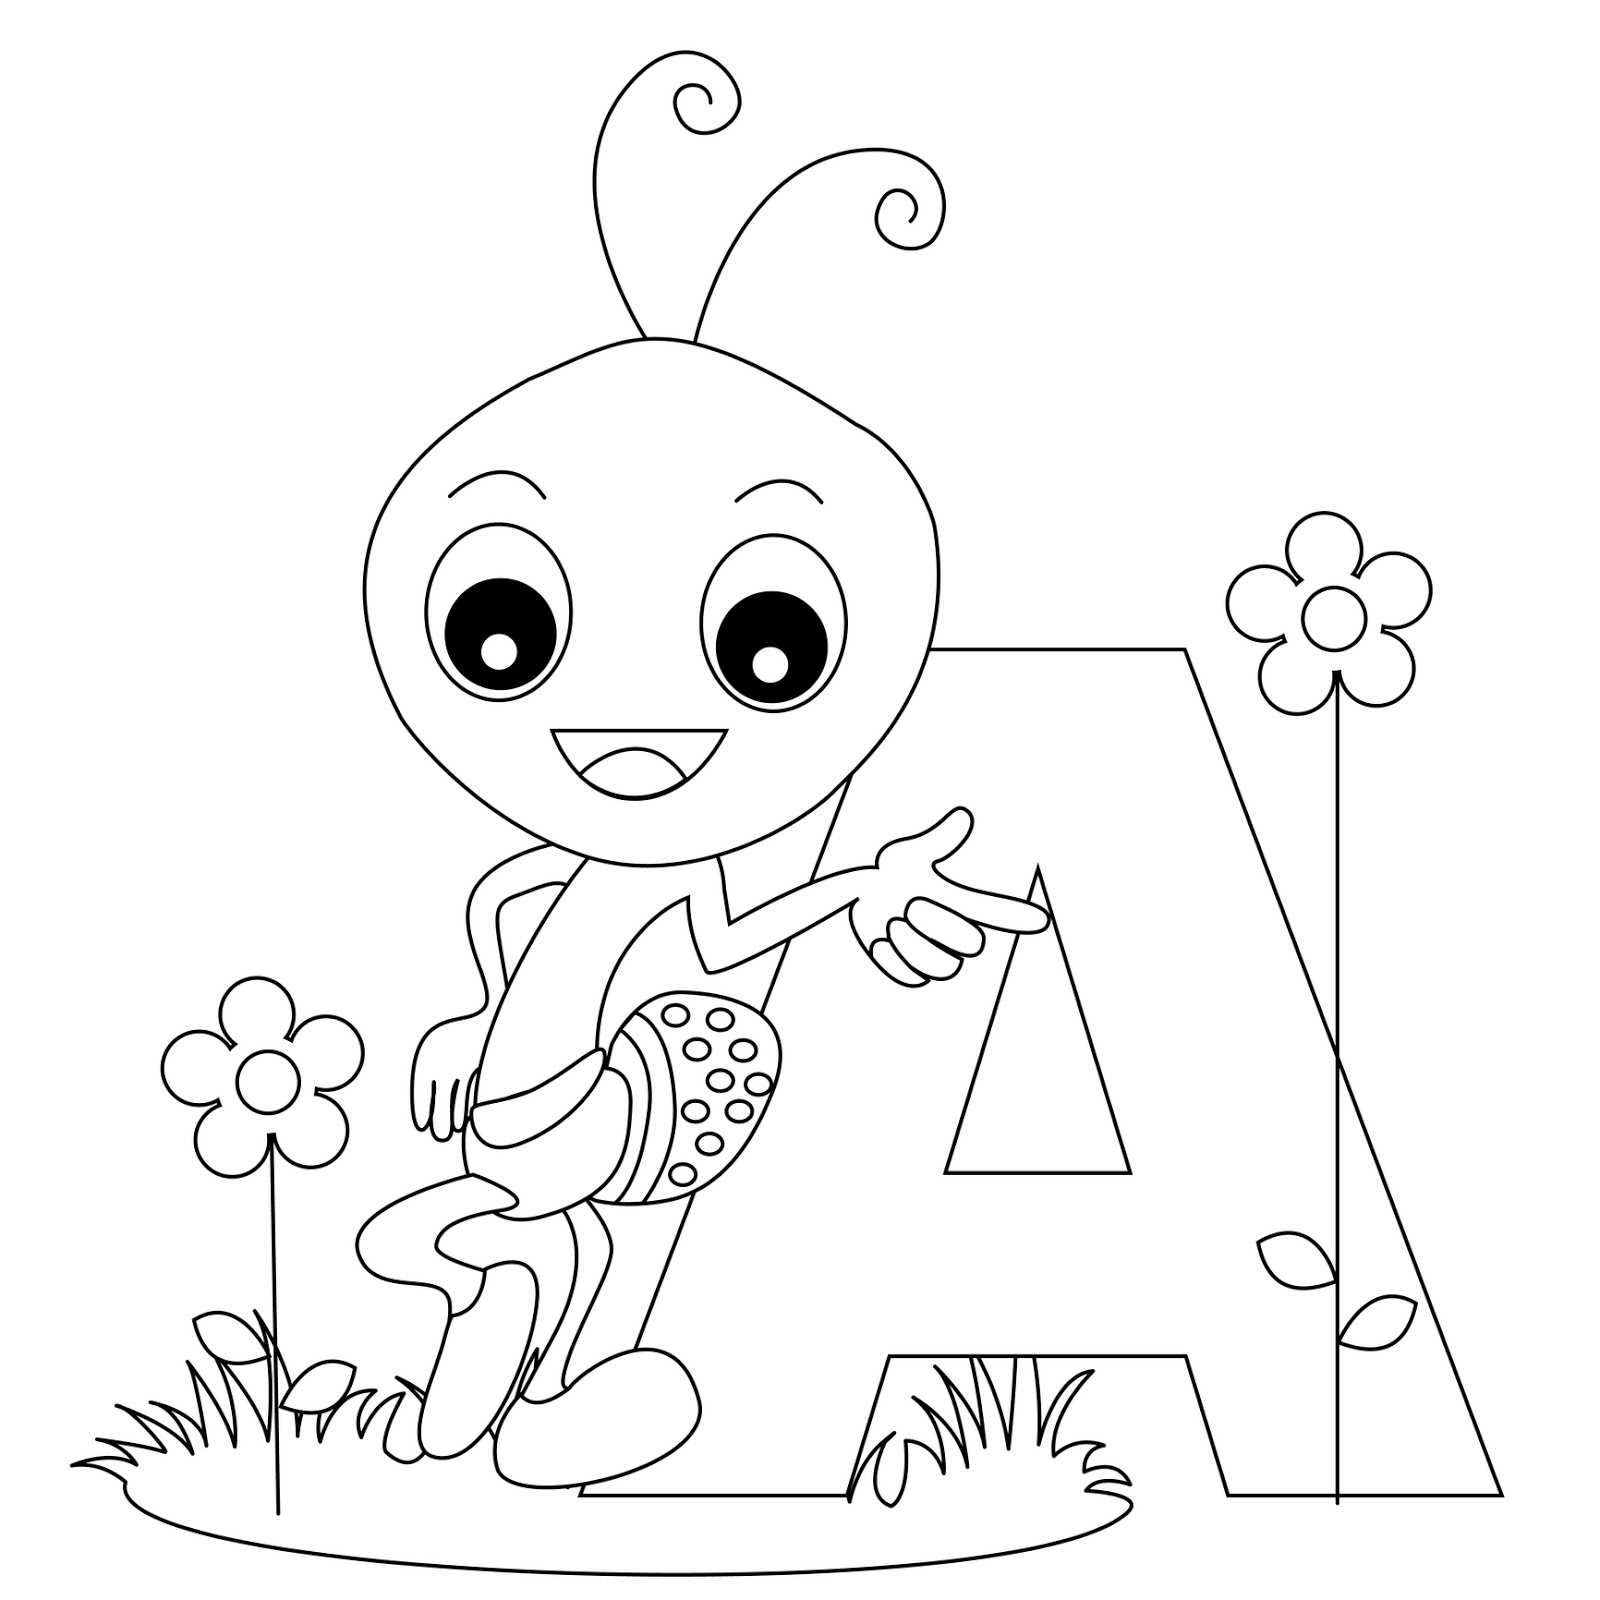 alphabet coloring pages for preschool - photo#6